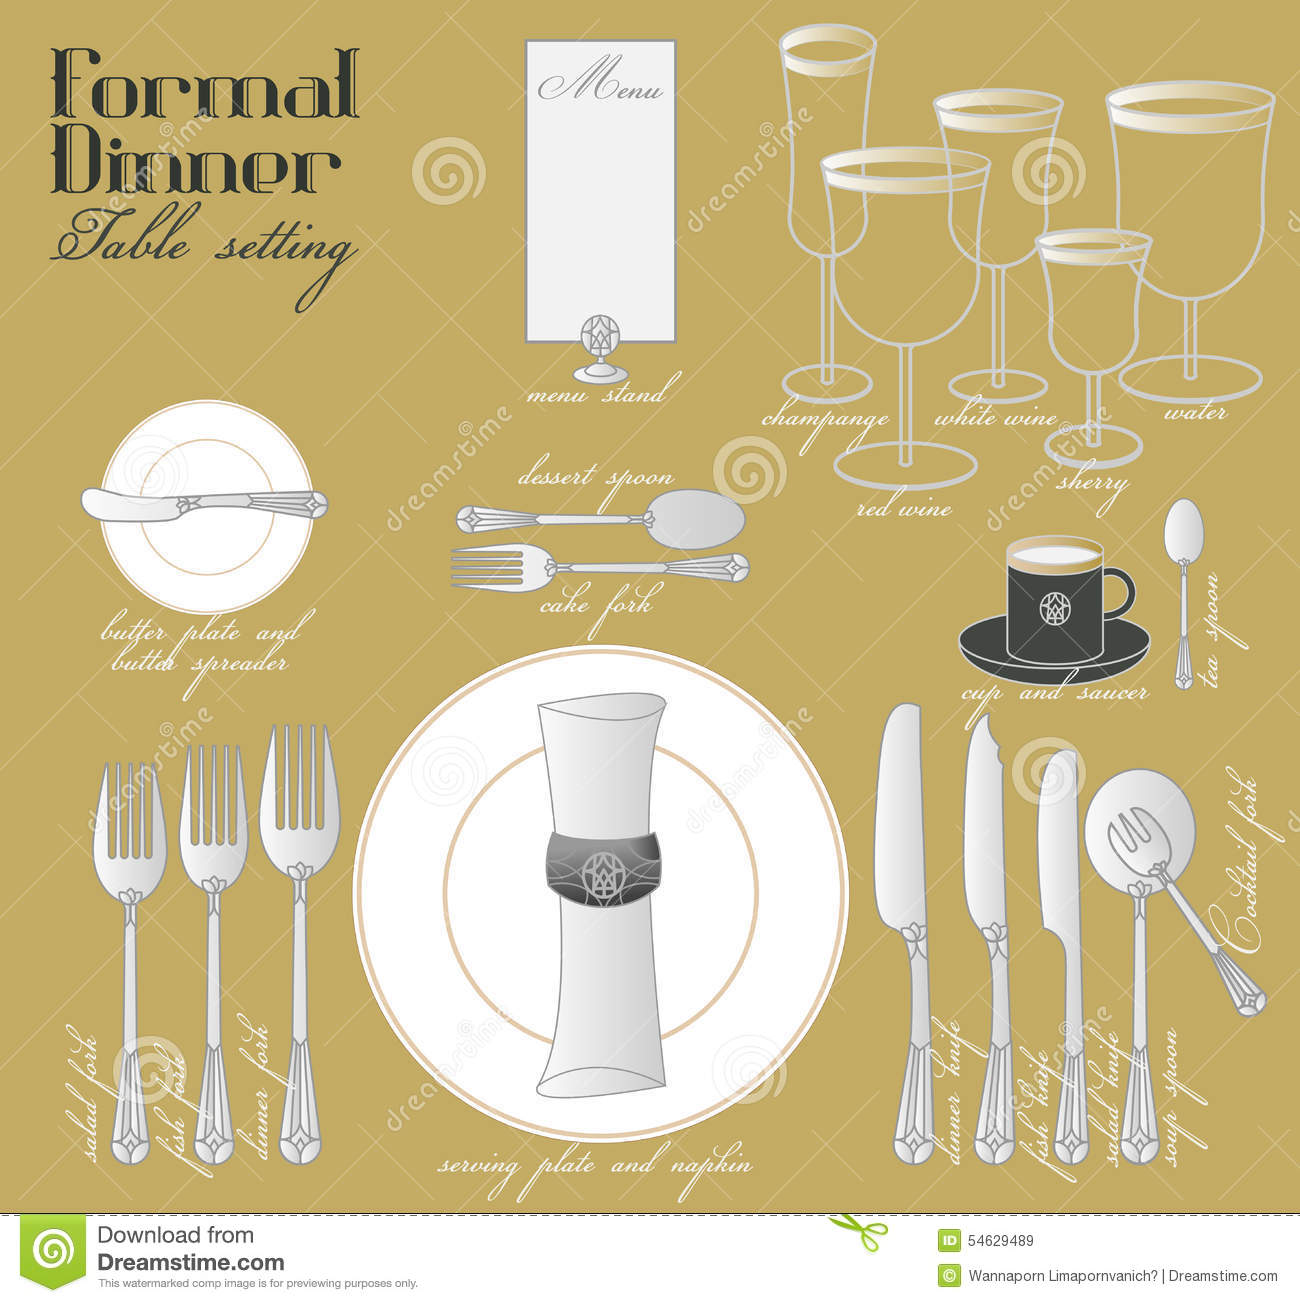 Formal dinner setting images Dinner table setting pictures